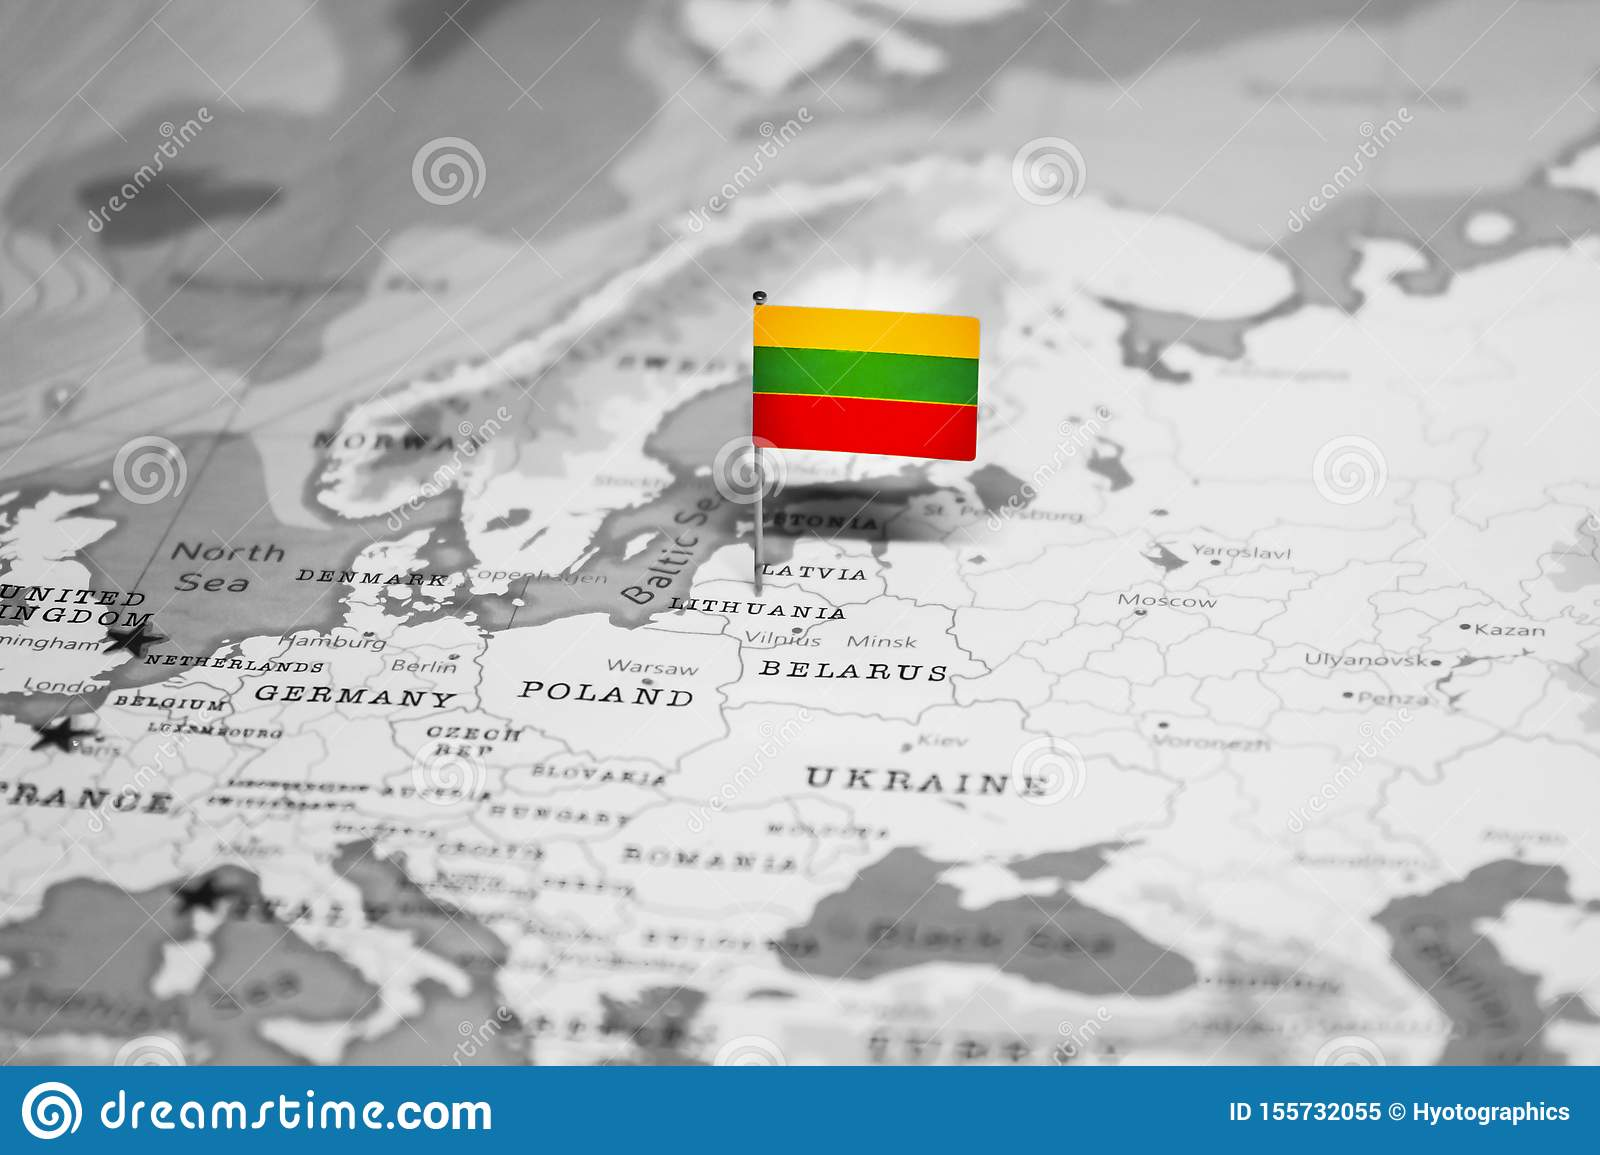 The Flag Of Lithuania In The World Map Stock Image - Image ...